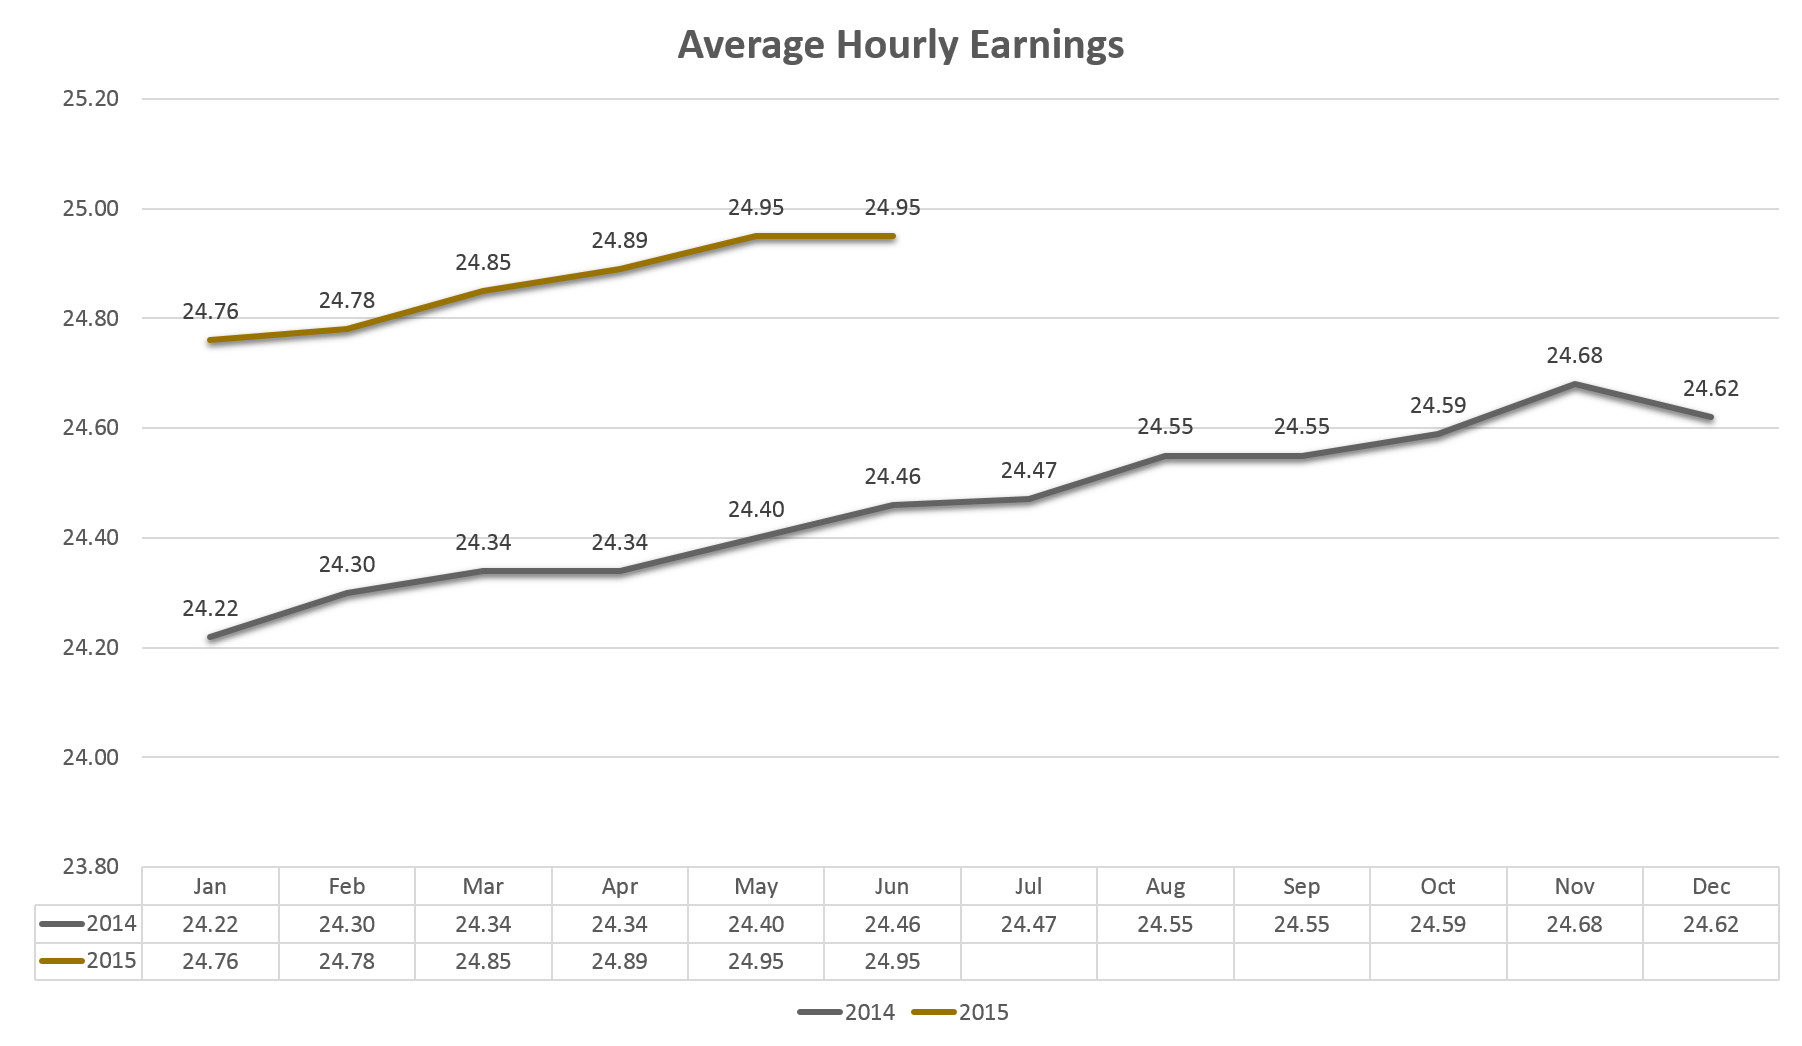 Average Hourly Earnings - 2014 to Present